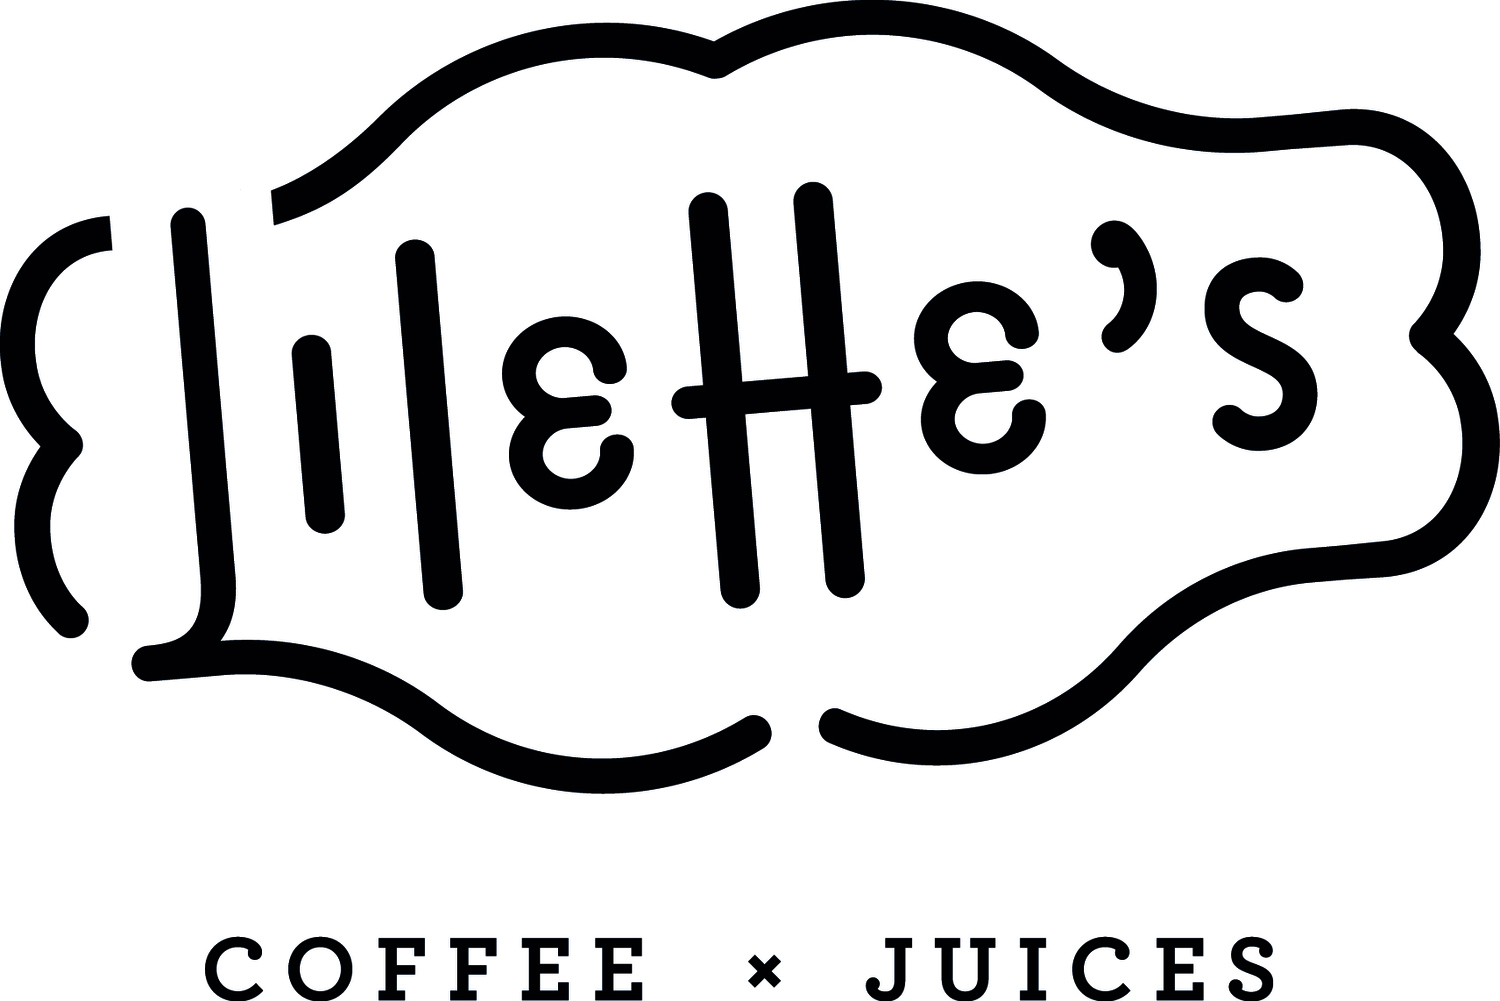 Lilette's Coffee & Juices